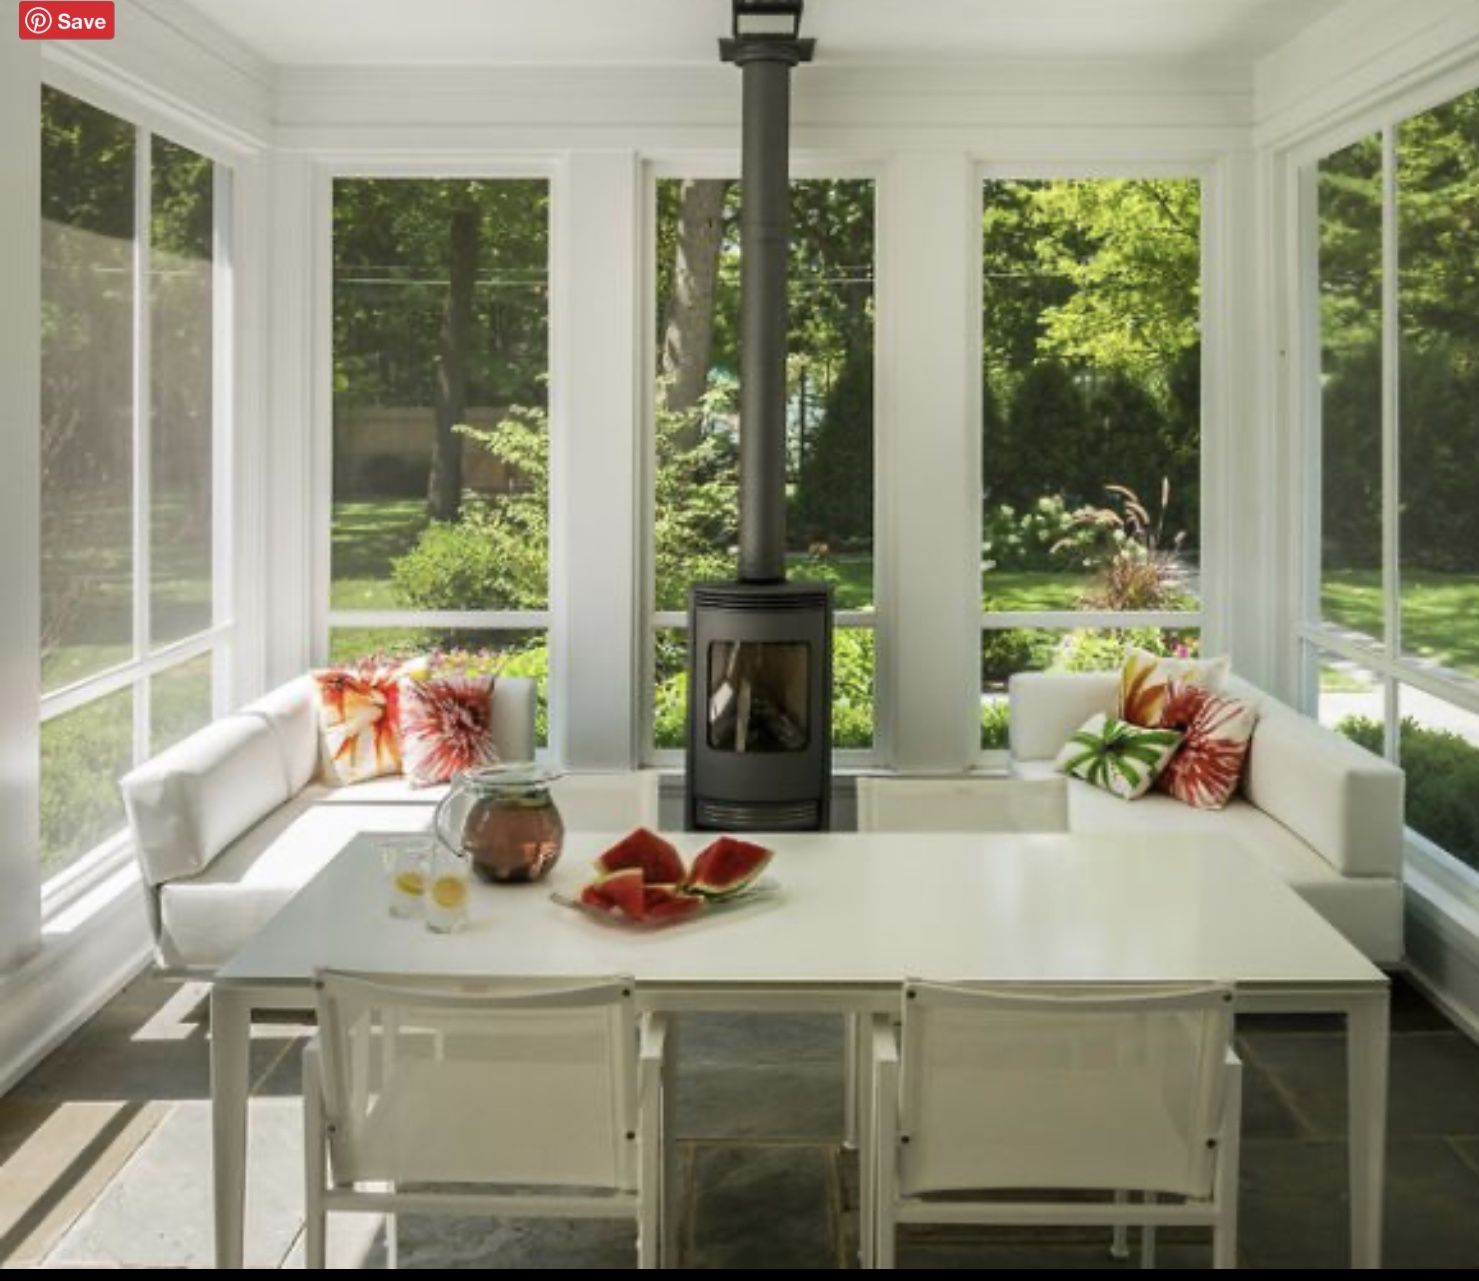 Small Room Addition Ideas: Cole On Sunroom Addition In 2020